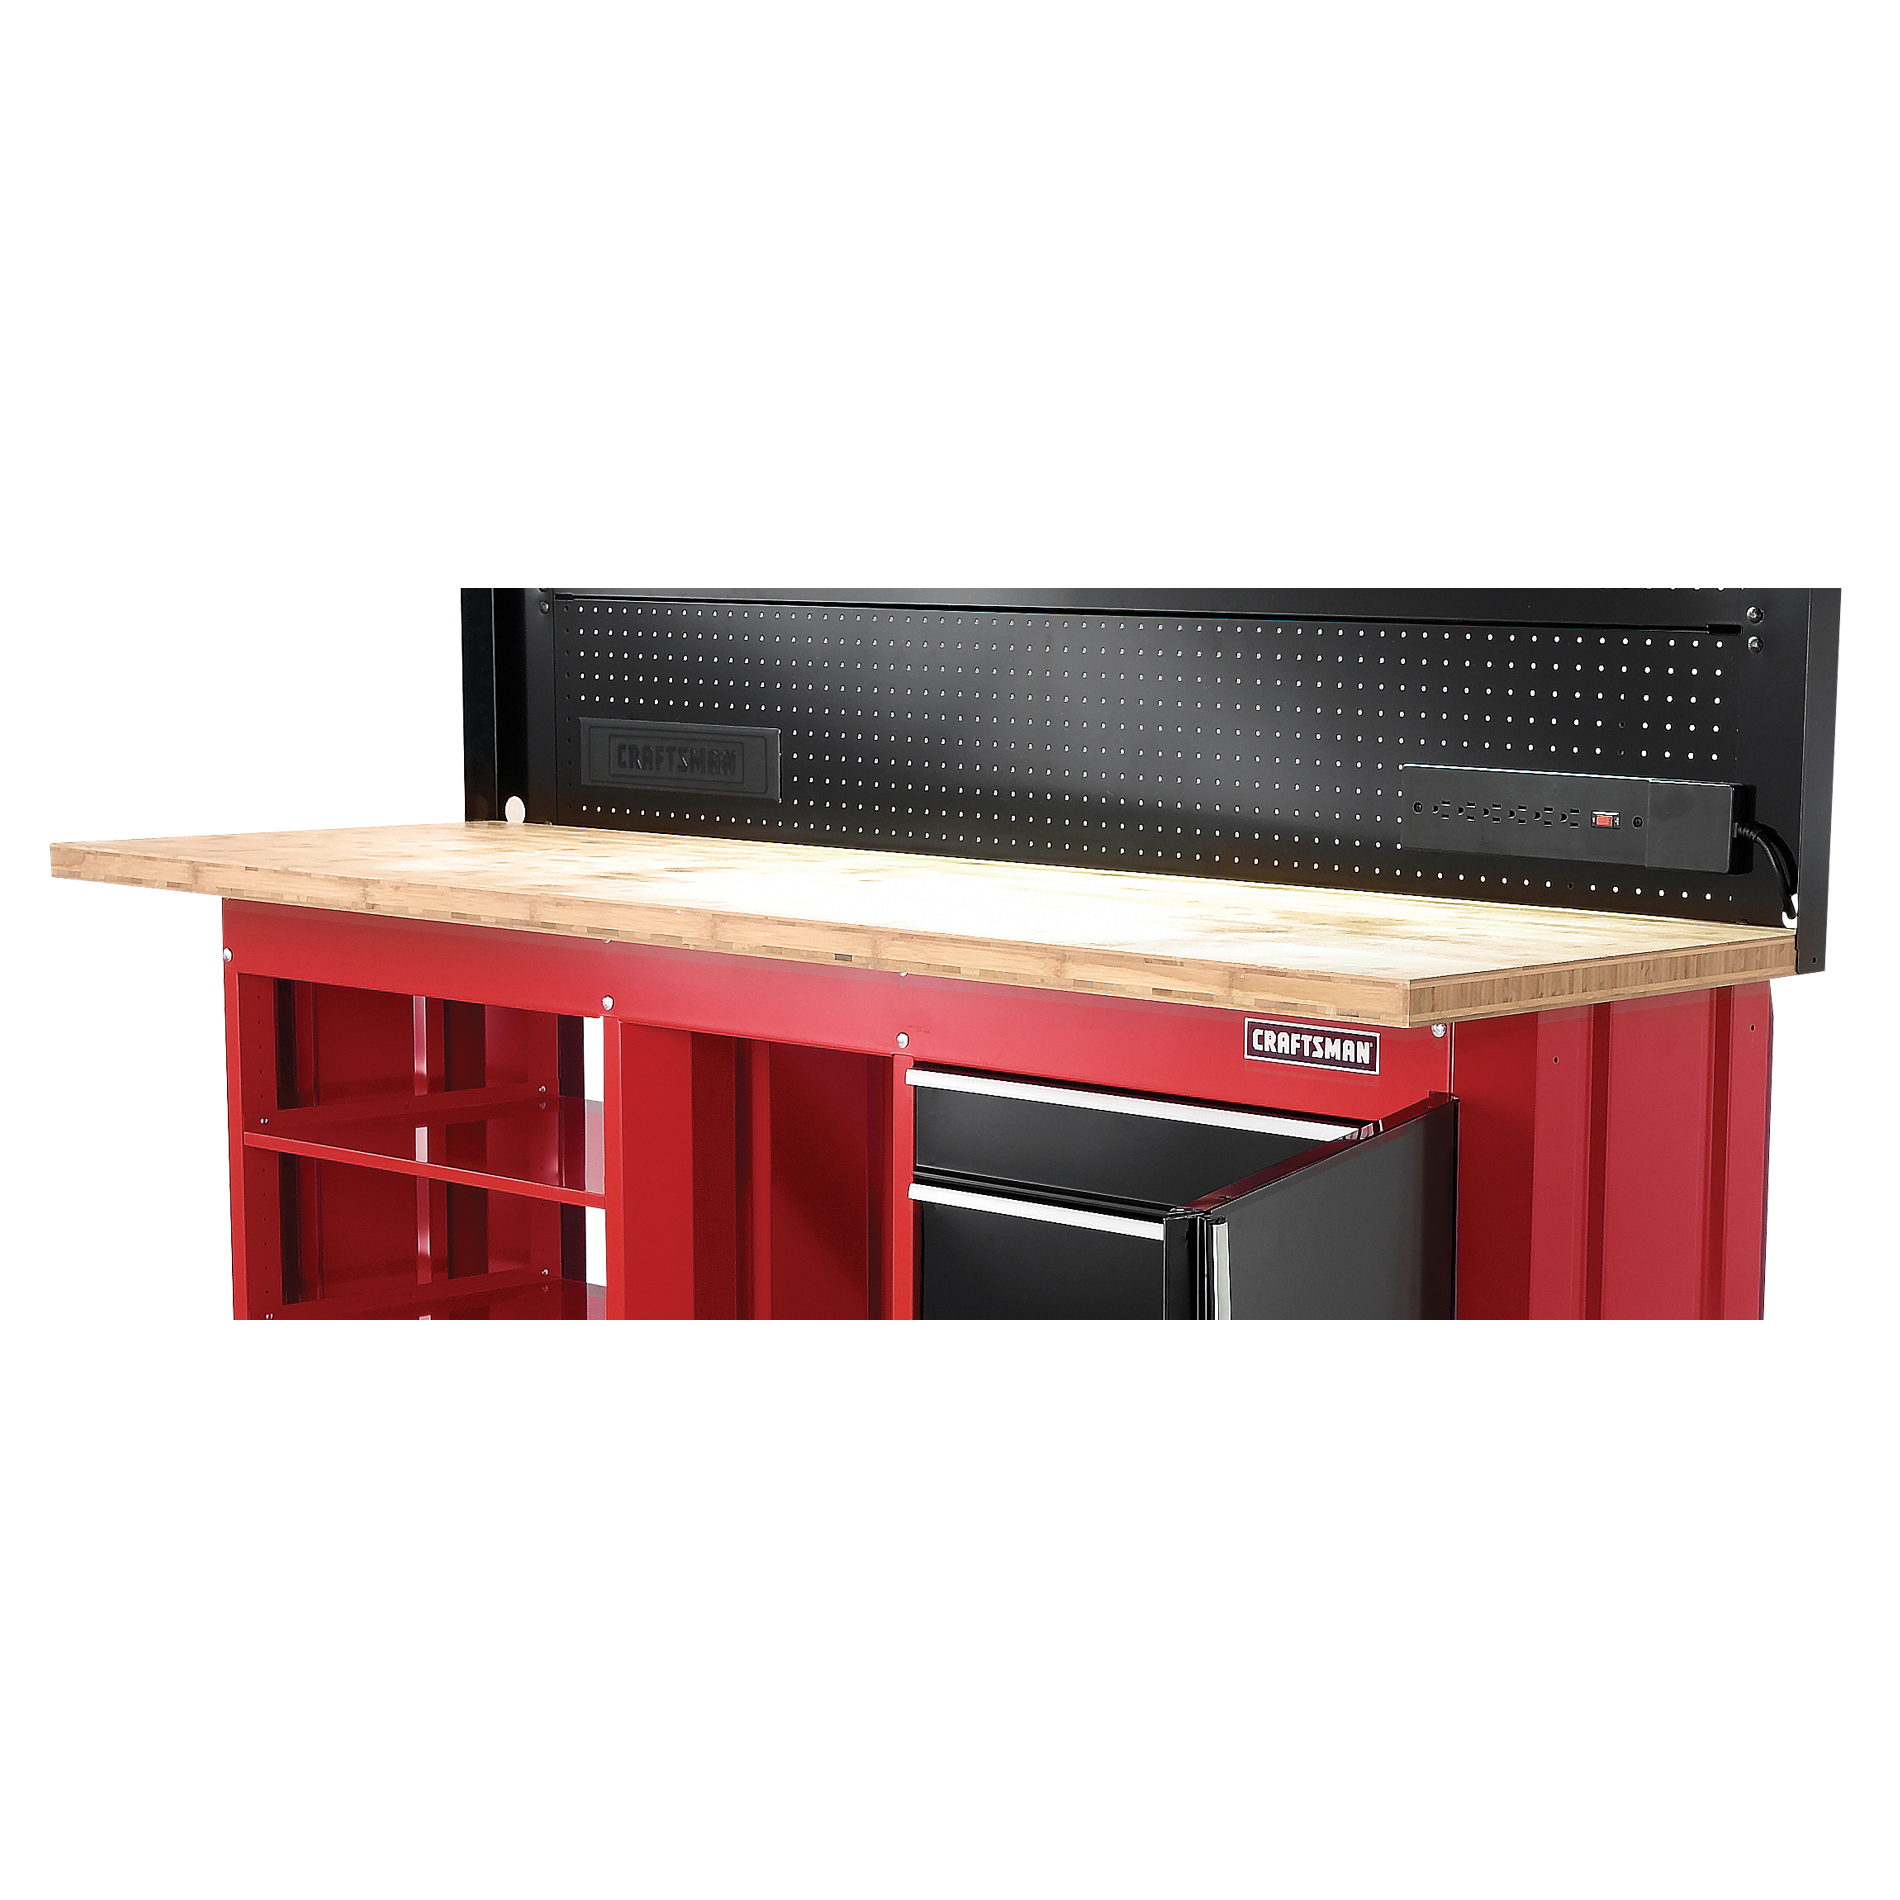 Bamboo workbench work surface: Sustainable and functional